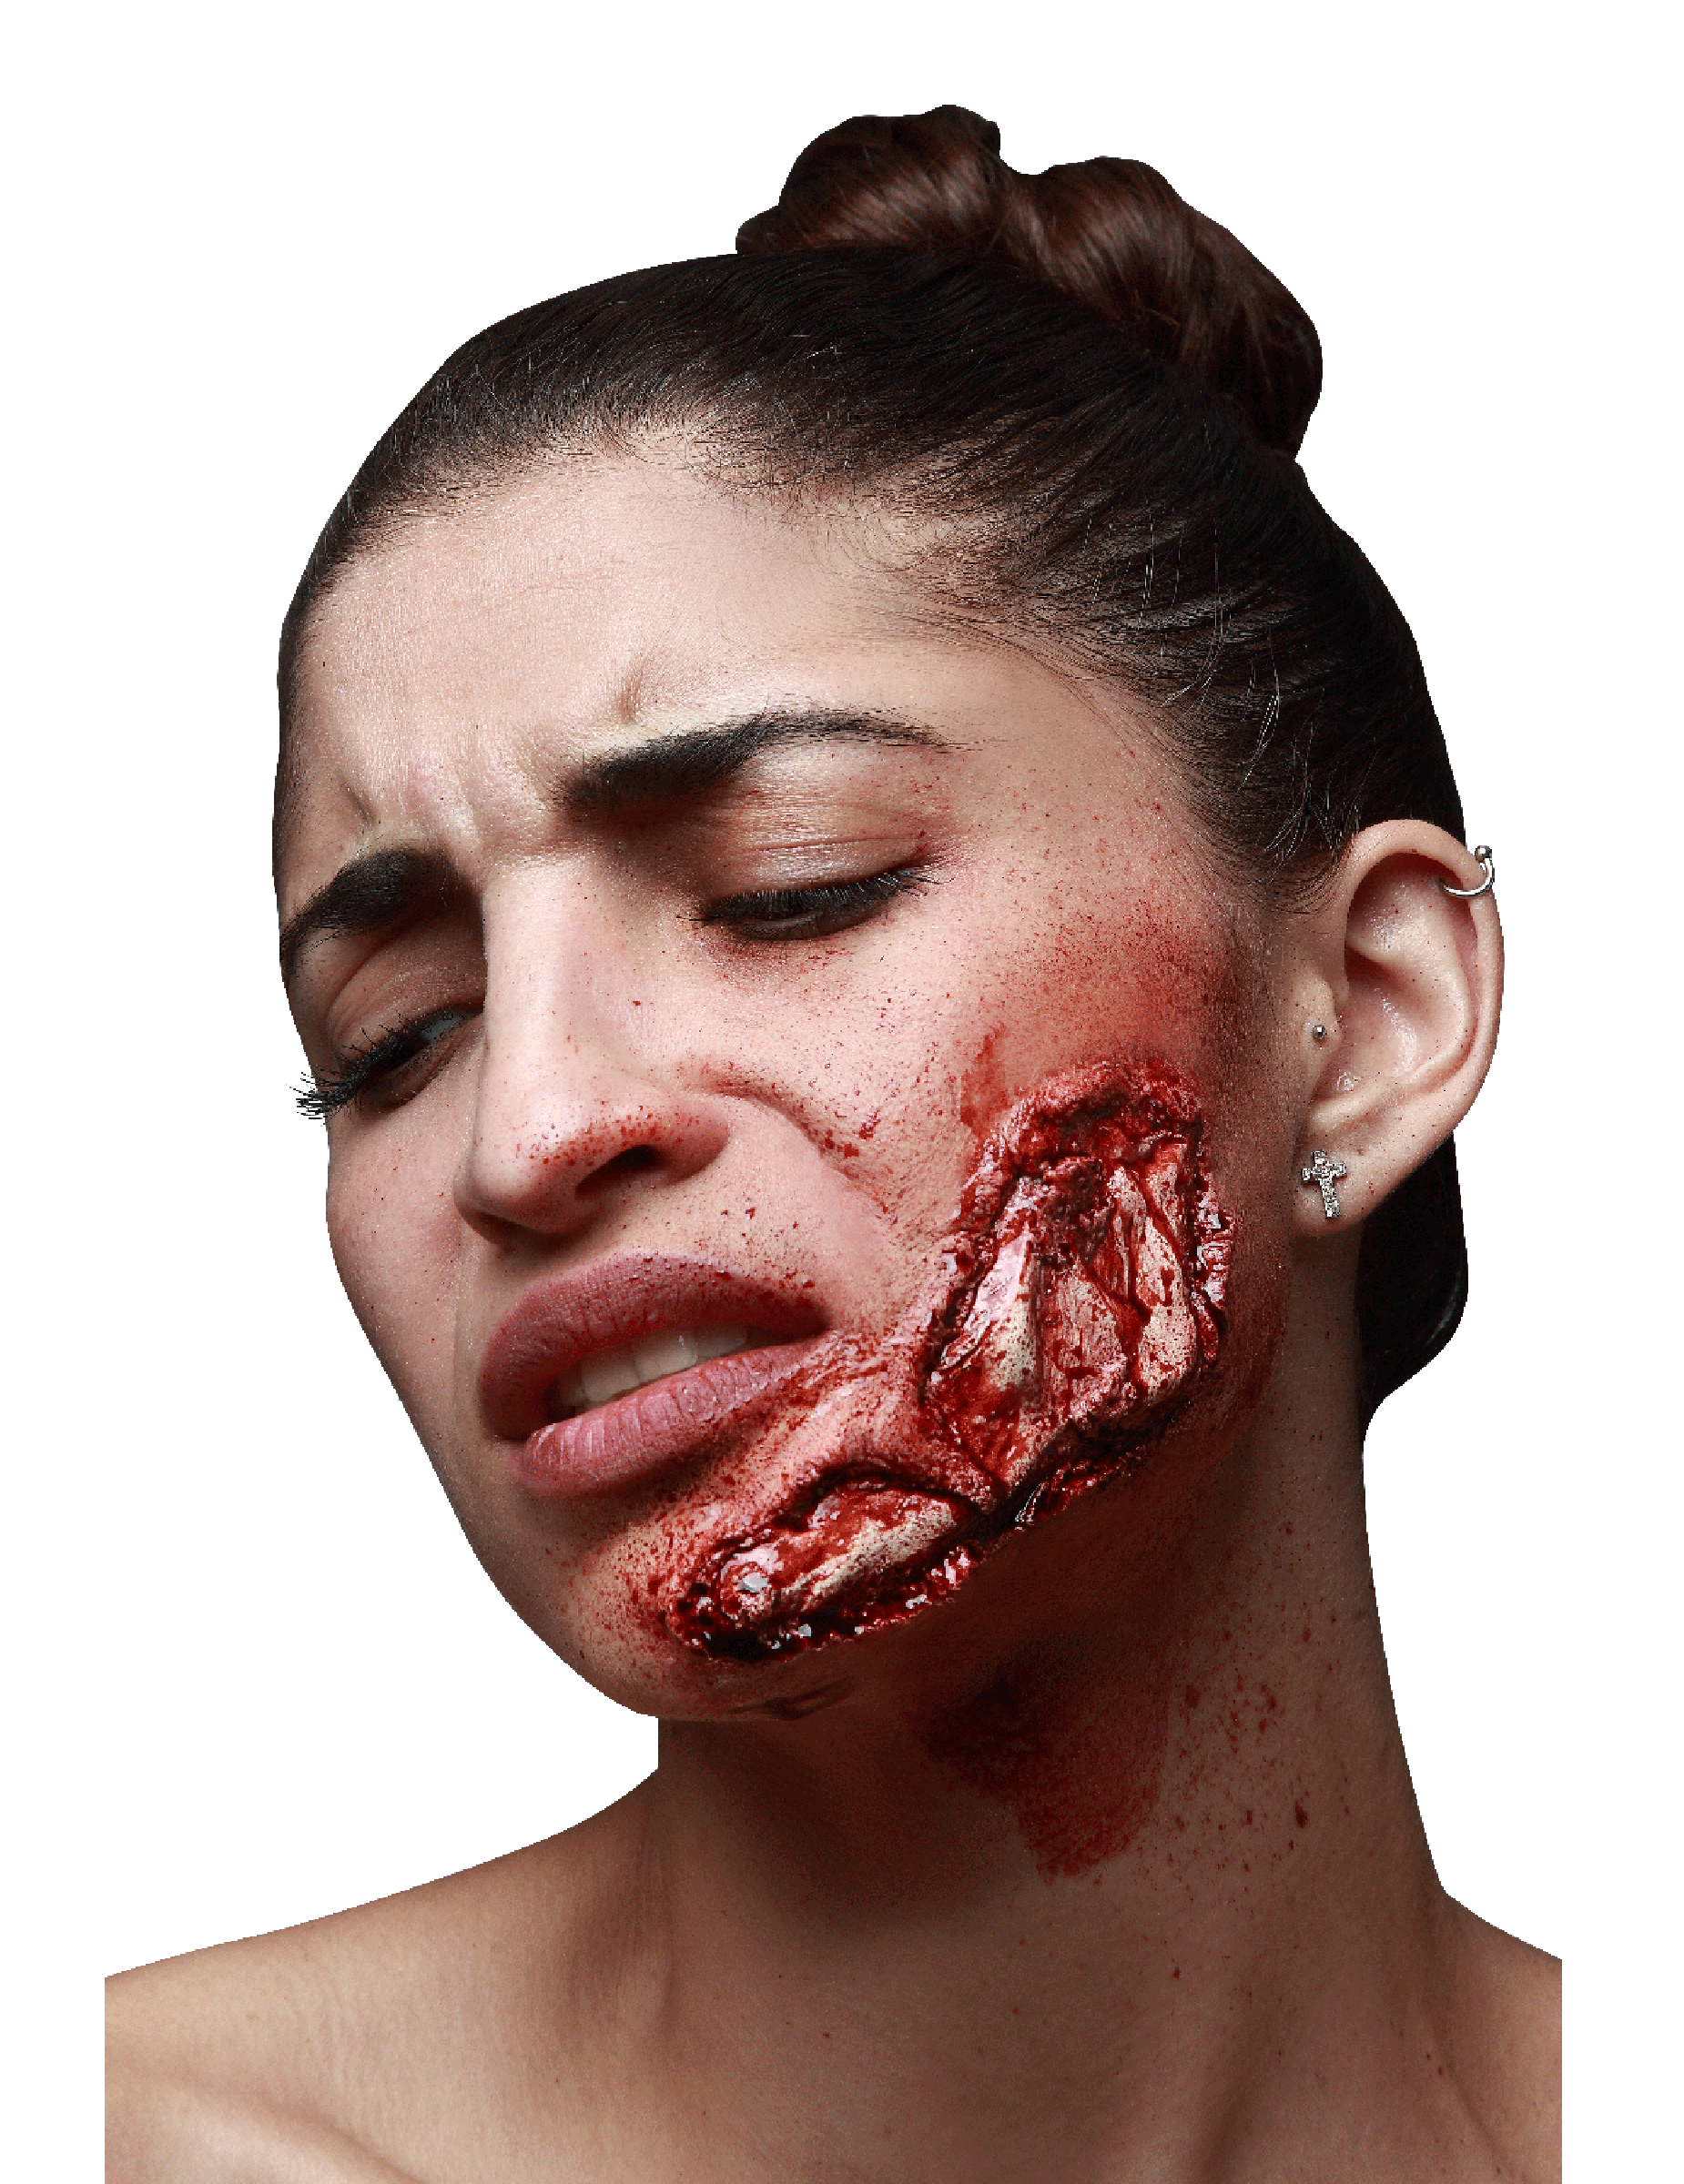 Fausse blessure m choire apparente adulte halloween achat for Comidee maquillage halloween adulte